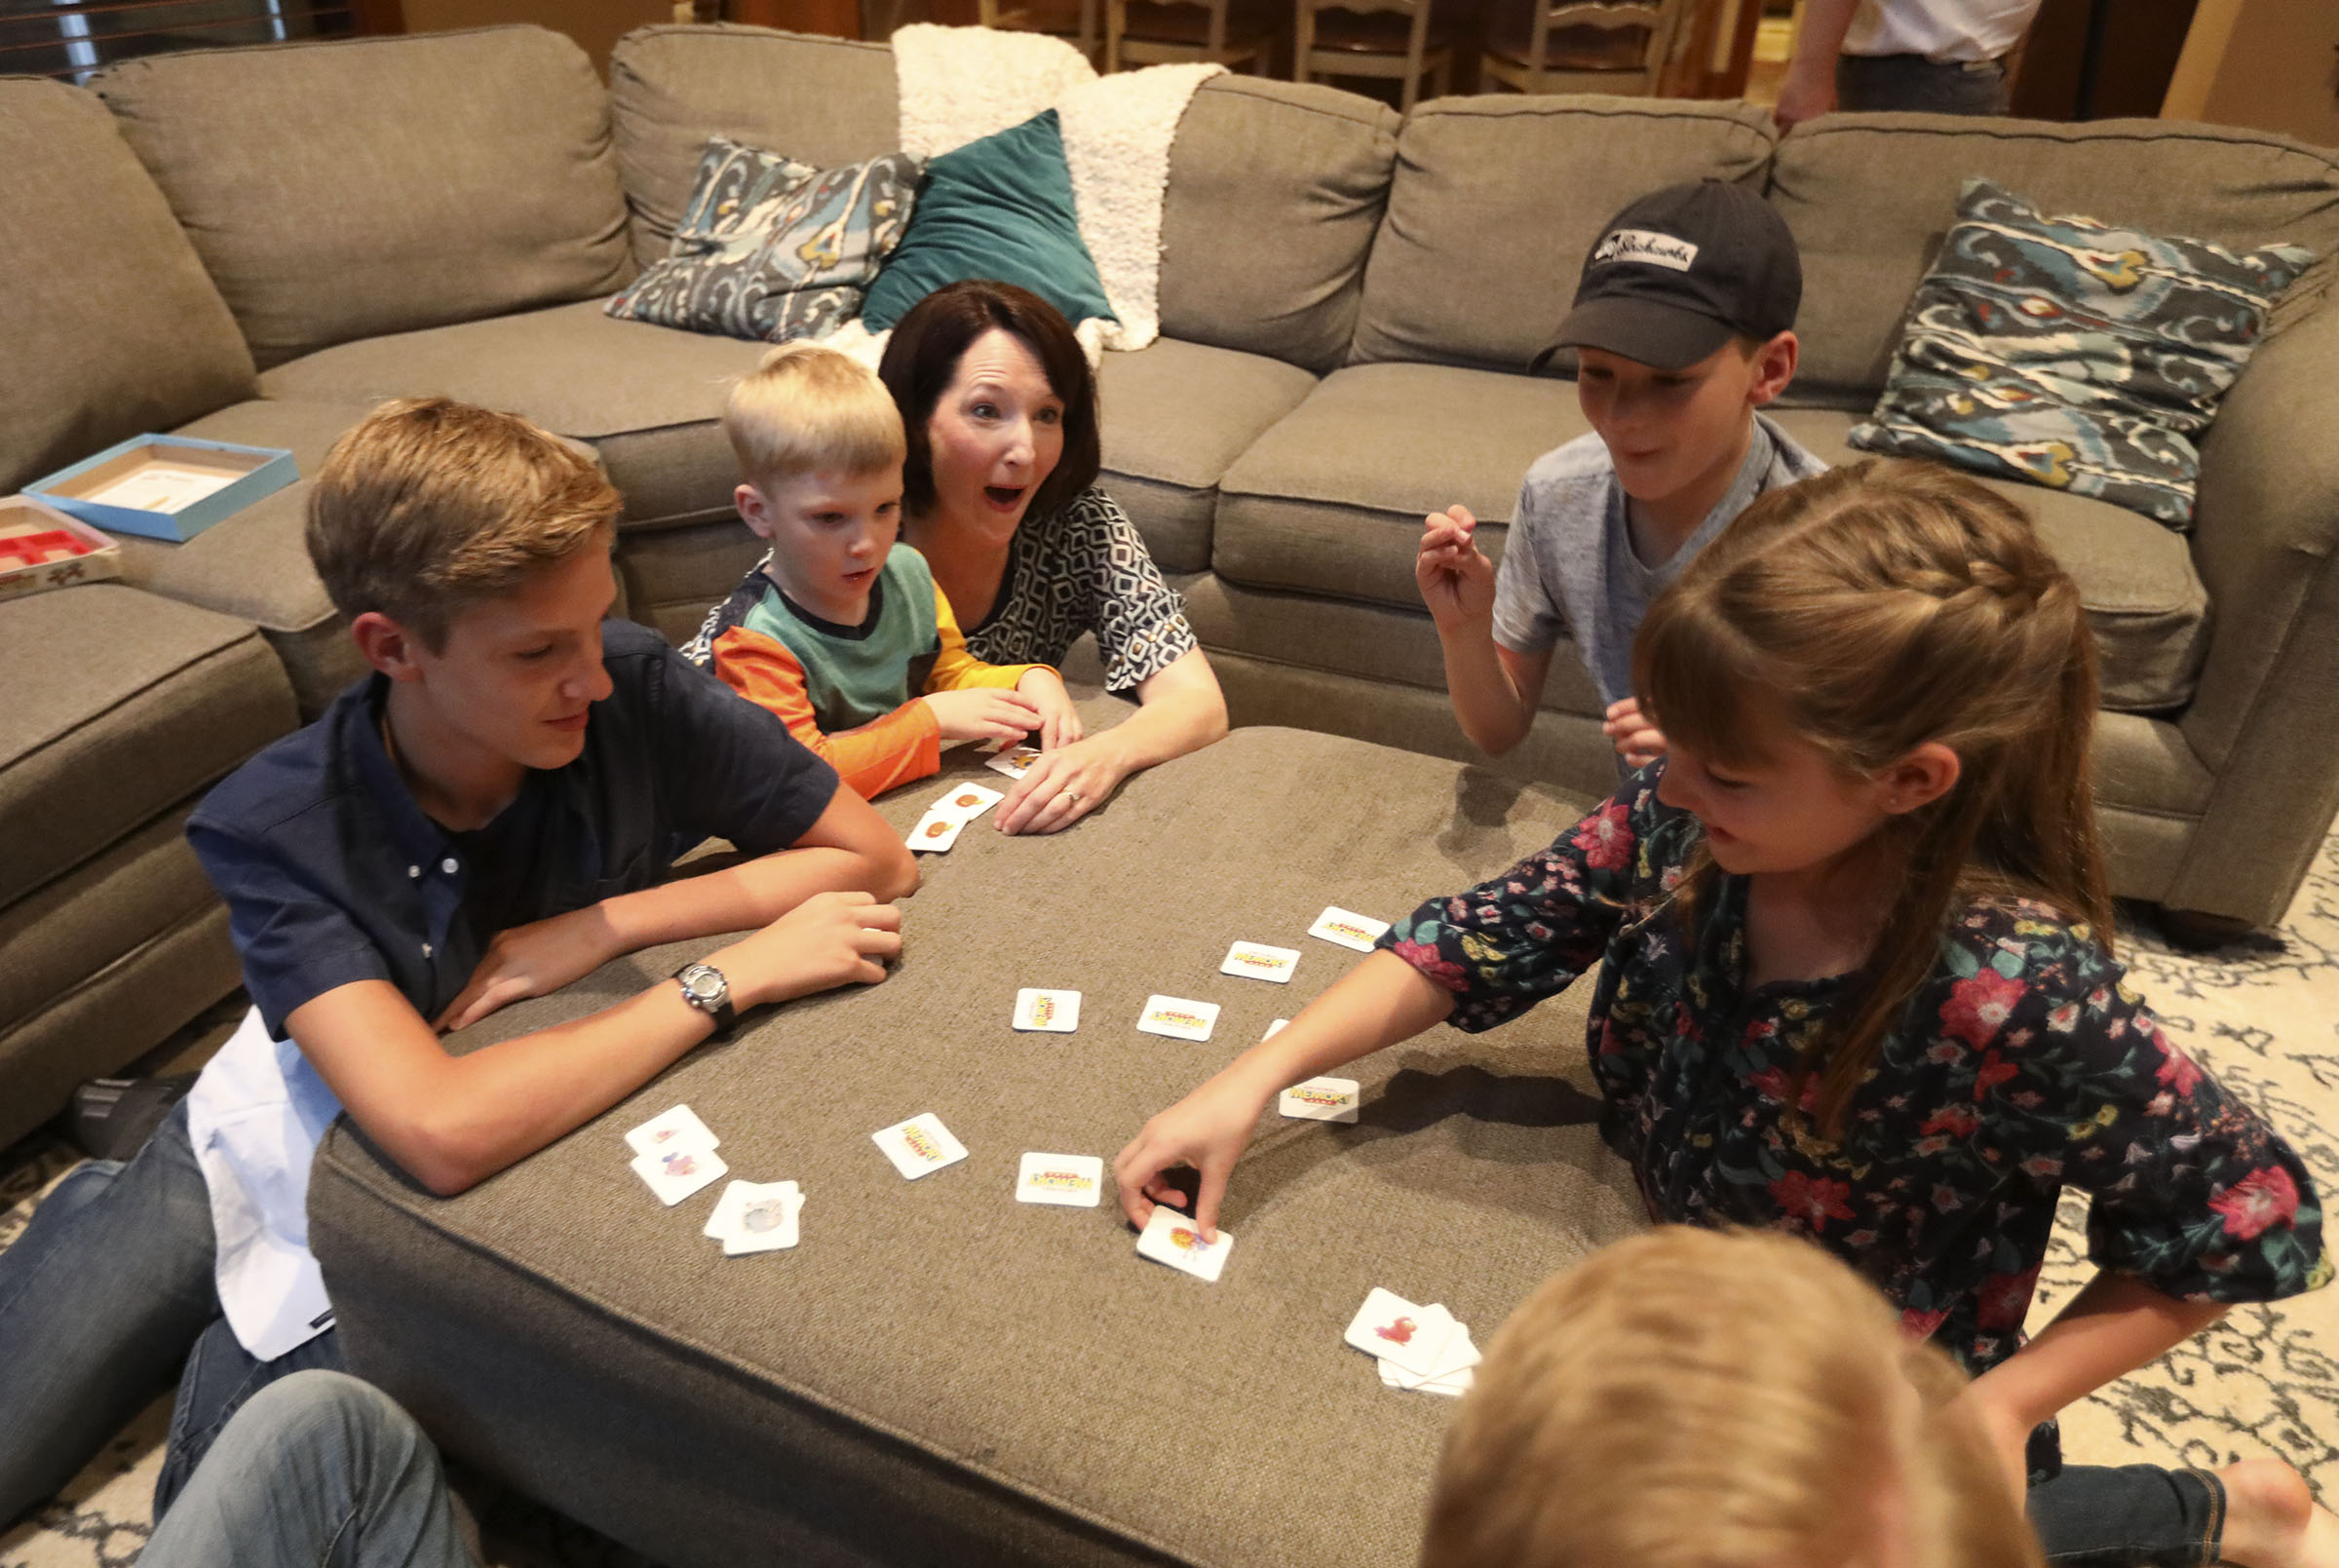 Ben, Daniel, Alexis, Tom and Emilia Allen play Memory at home in Renton, Wash., on Friday, Sept. 14, 2018.